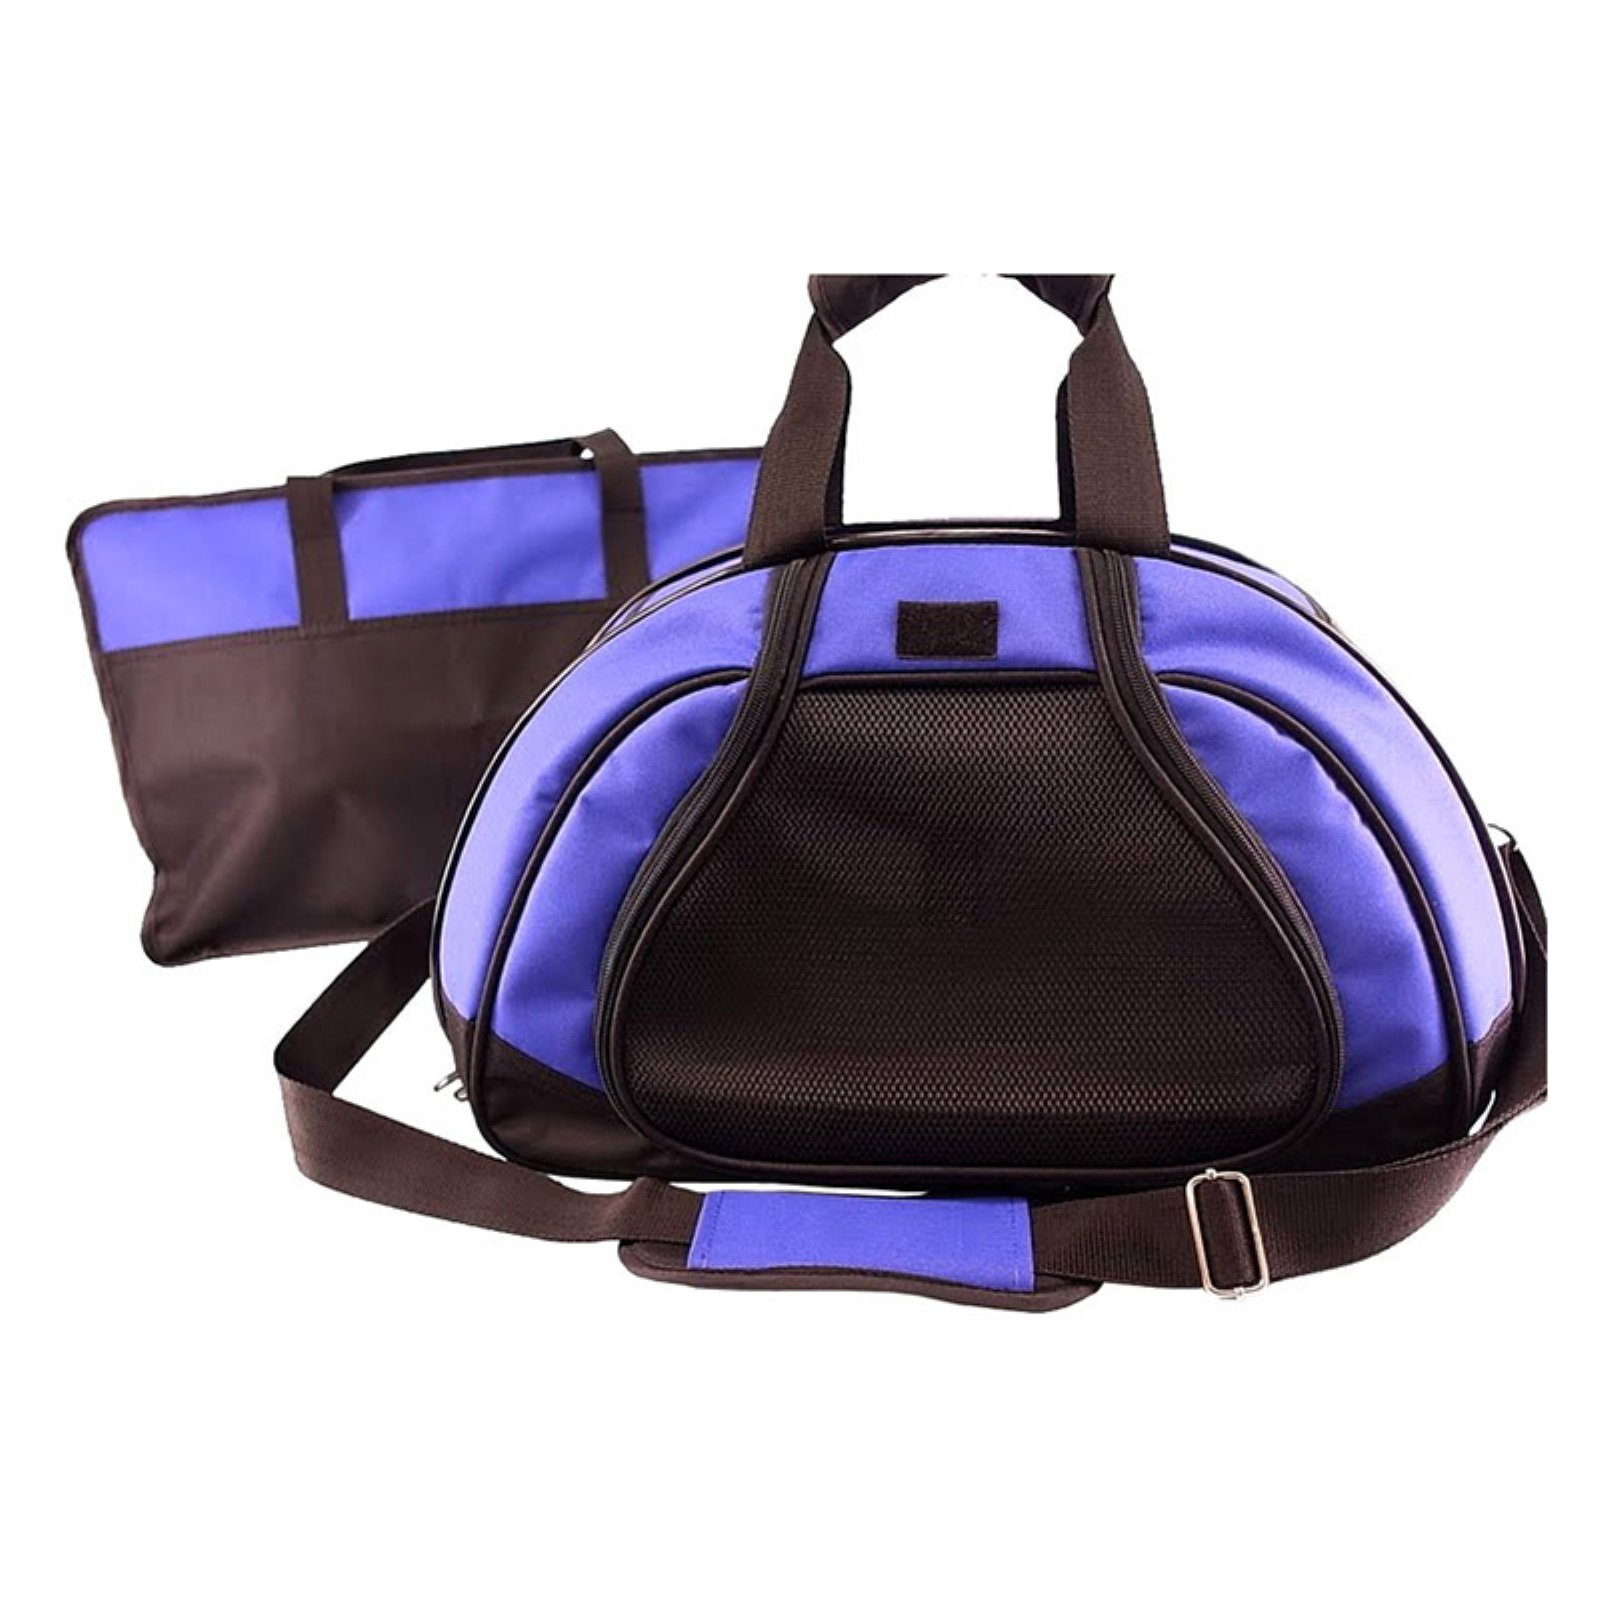 One For Pets The Travel Lite Carrier